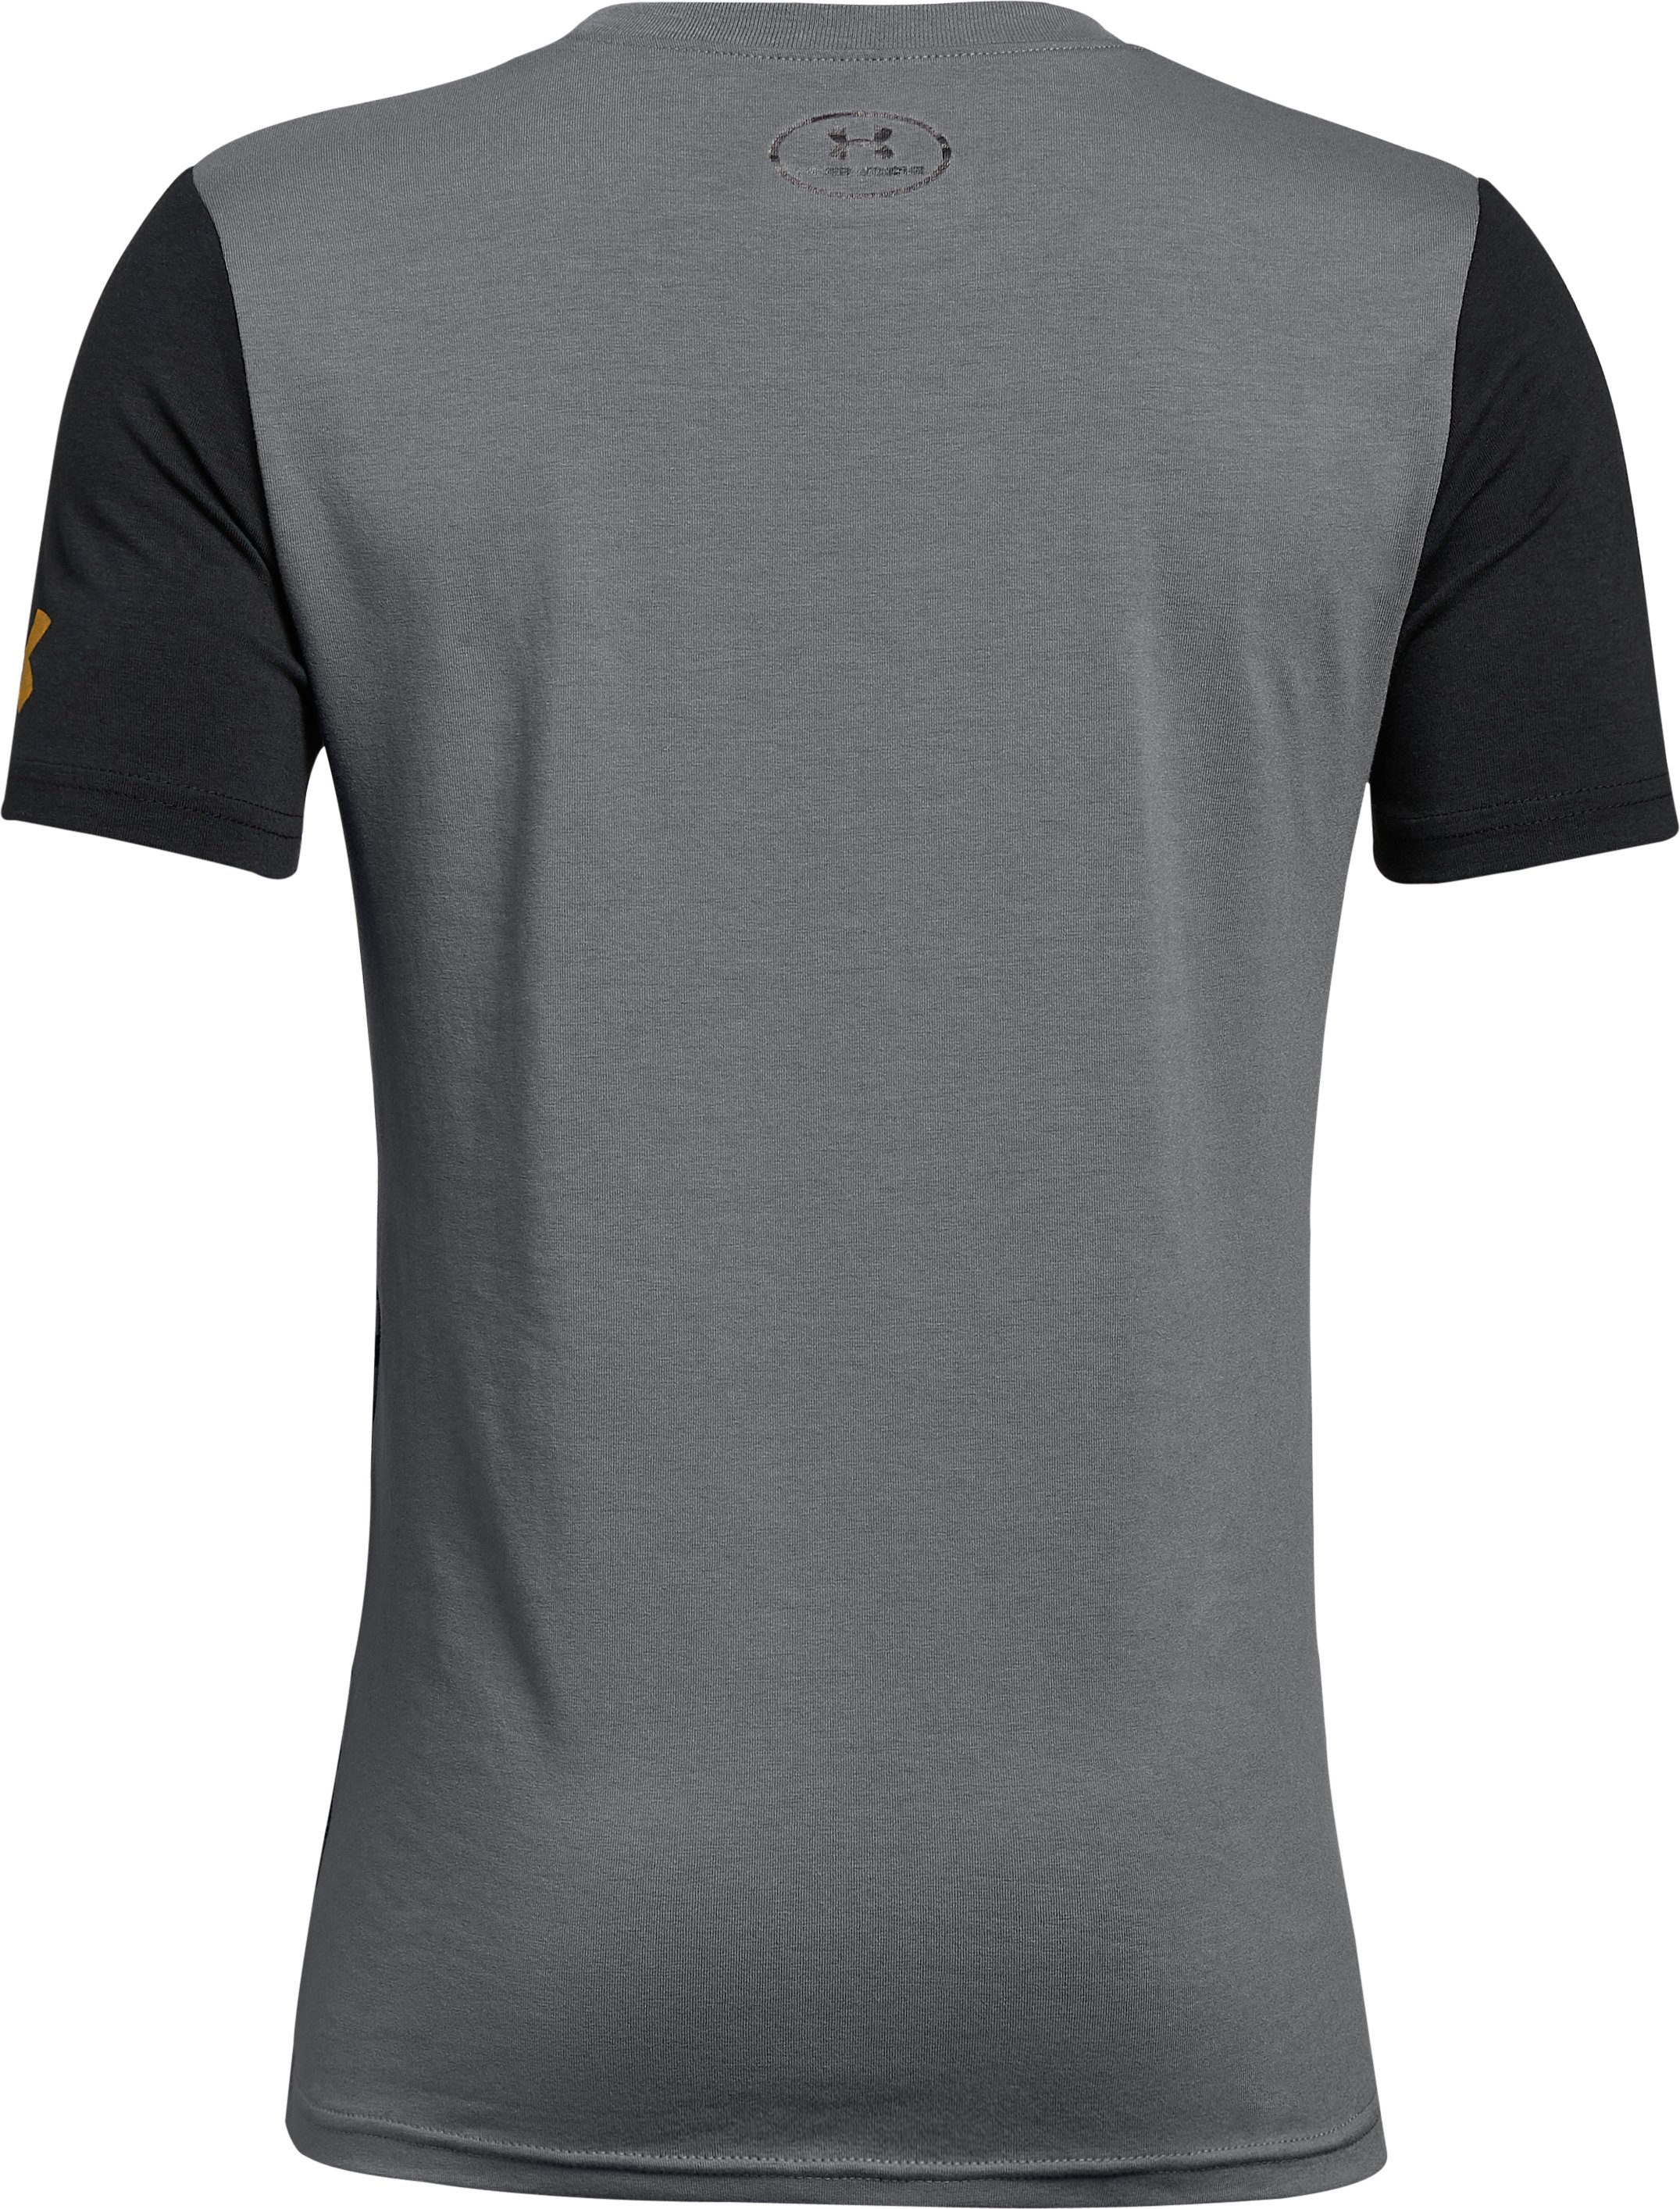 Boys' SC30 Money From The Arc Short Sleeve T-Shirt, Graphite,